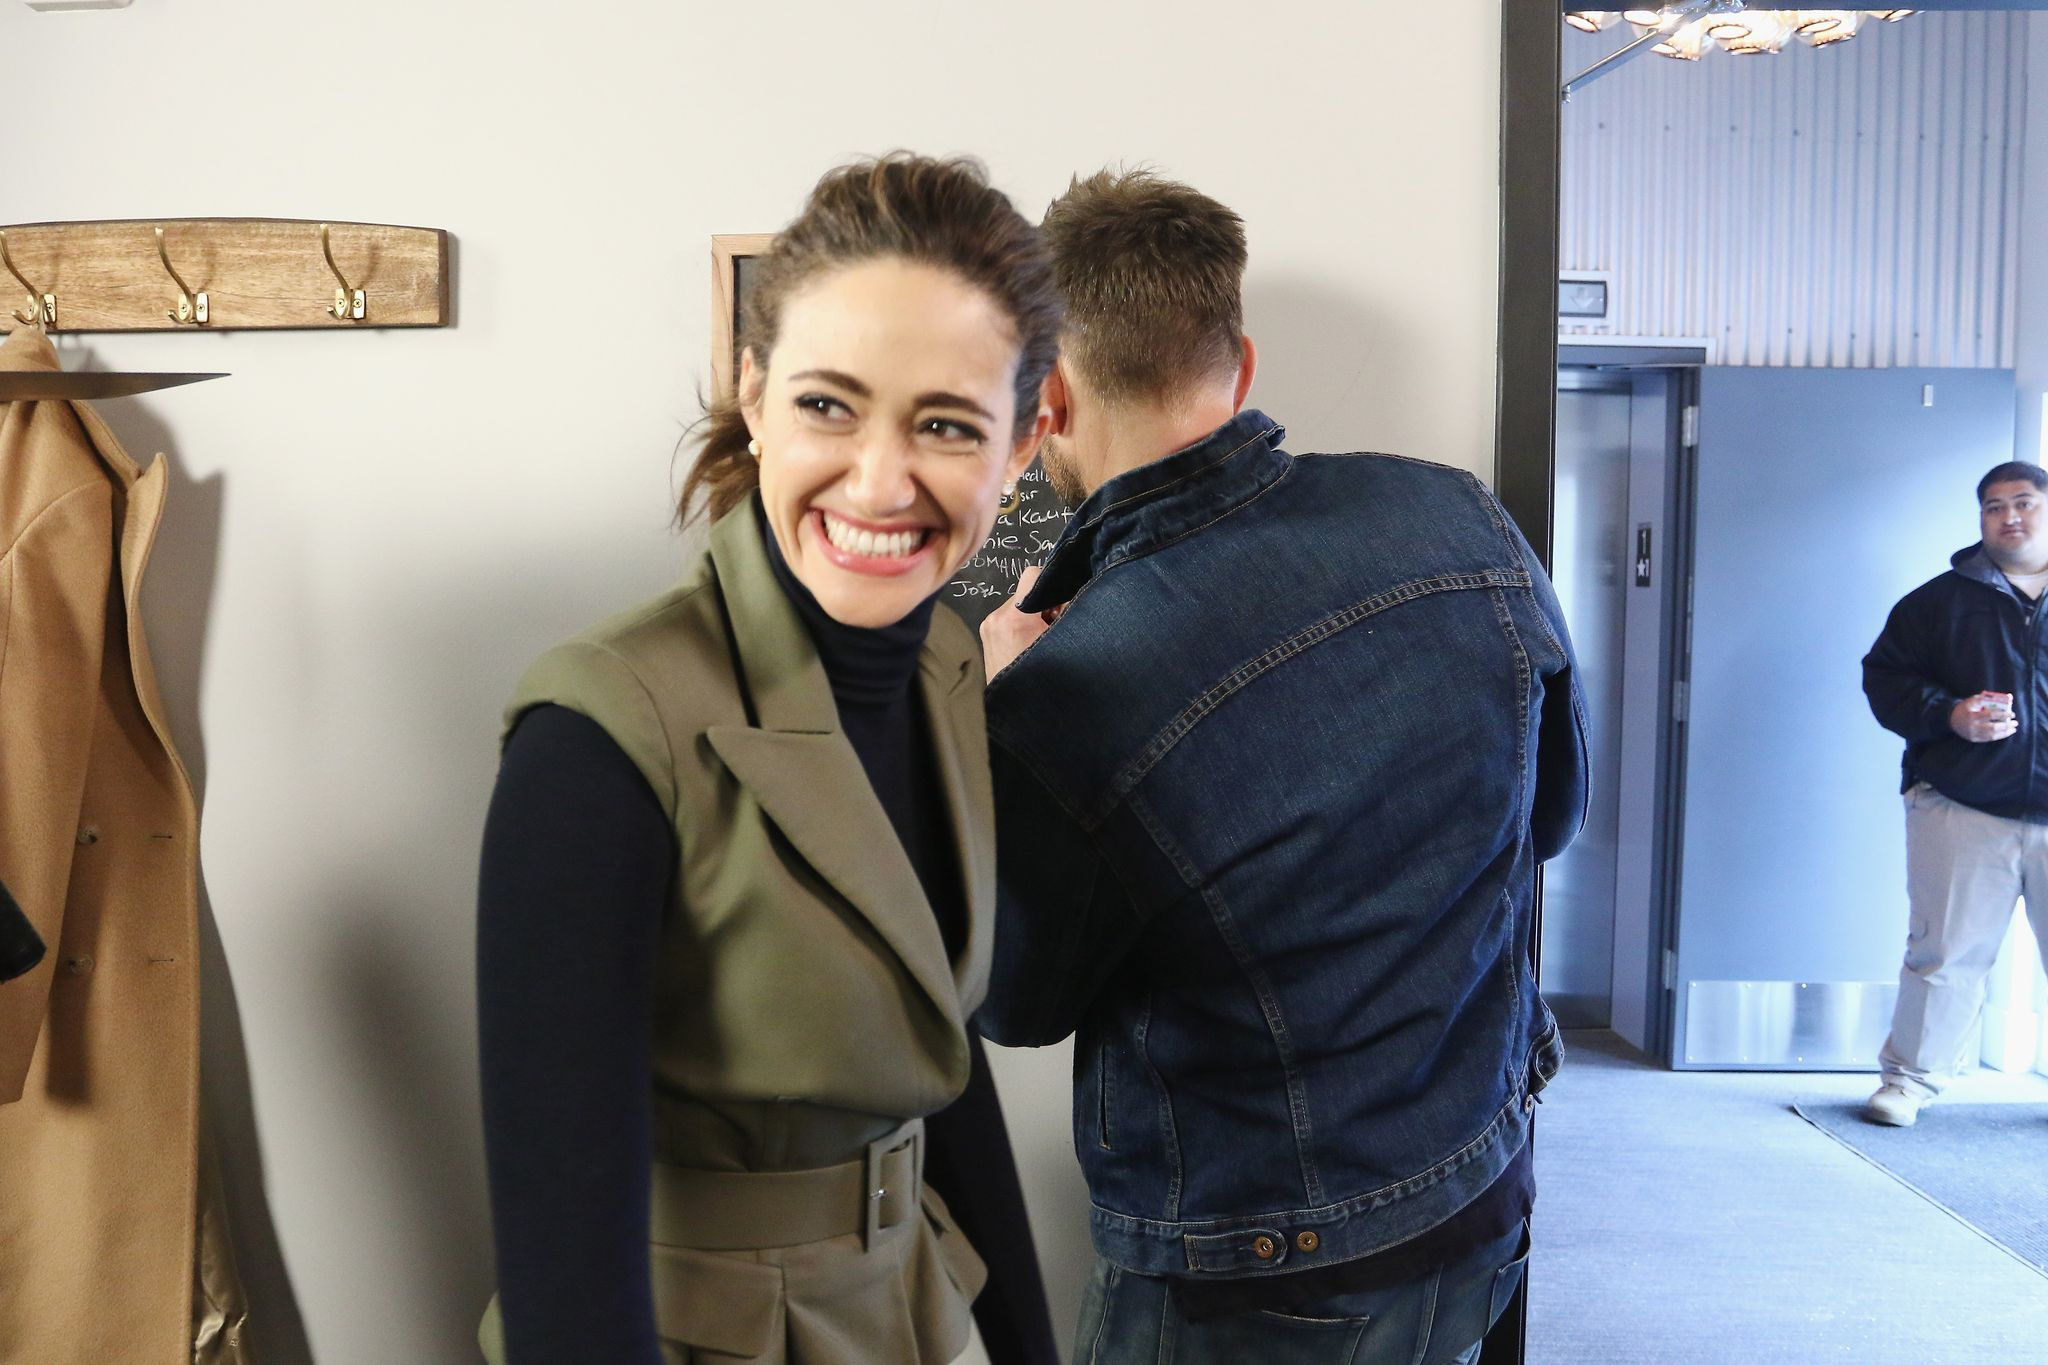 Emmy Rossum was pranked by her co-stars / Getty Images